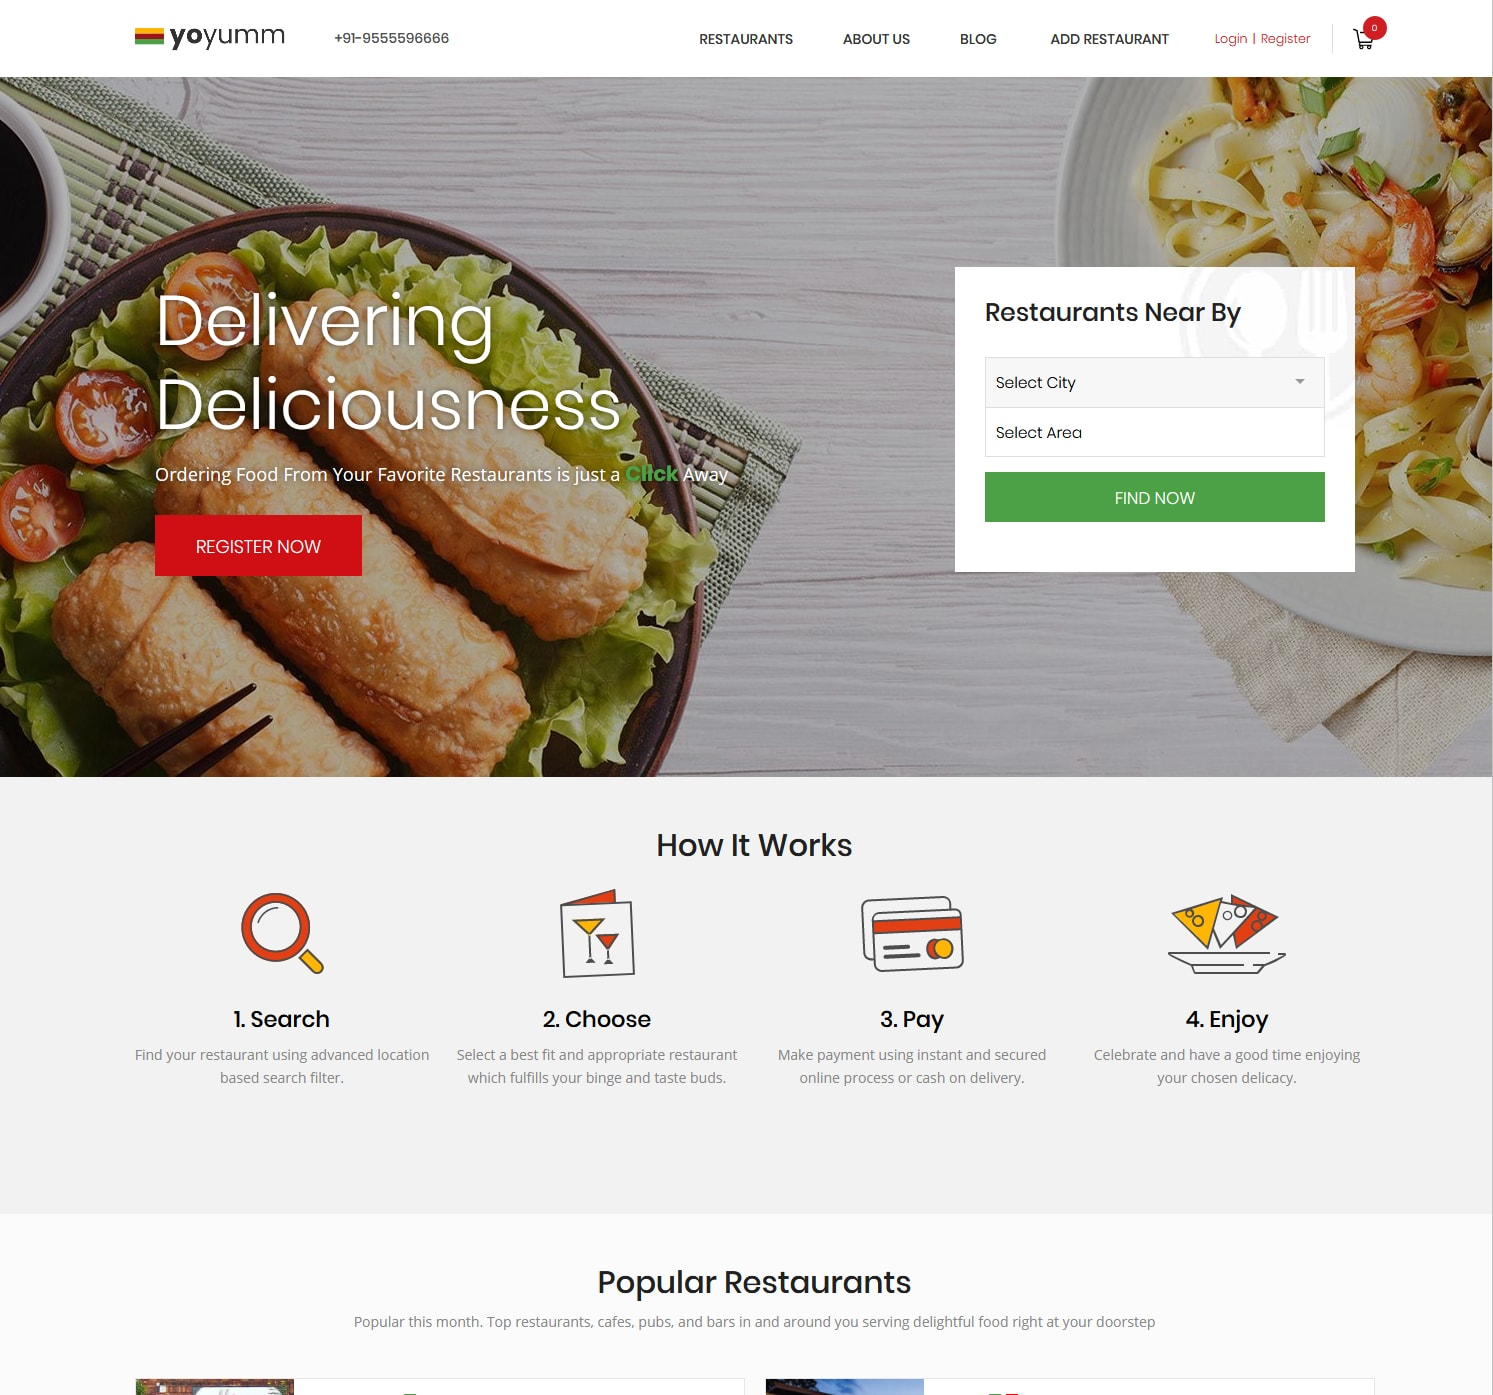 Tips & Features to Make Your Online Food Ordering and Delivery